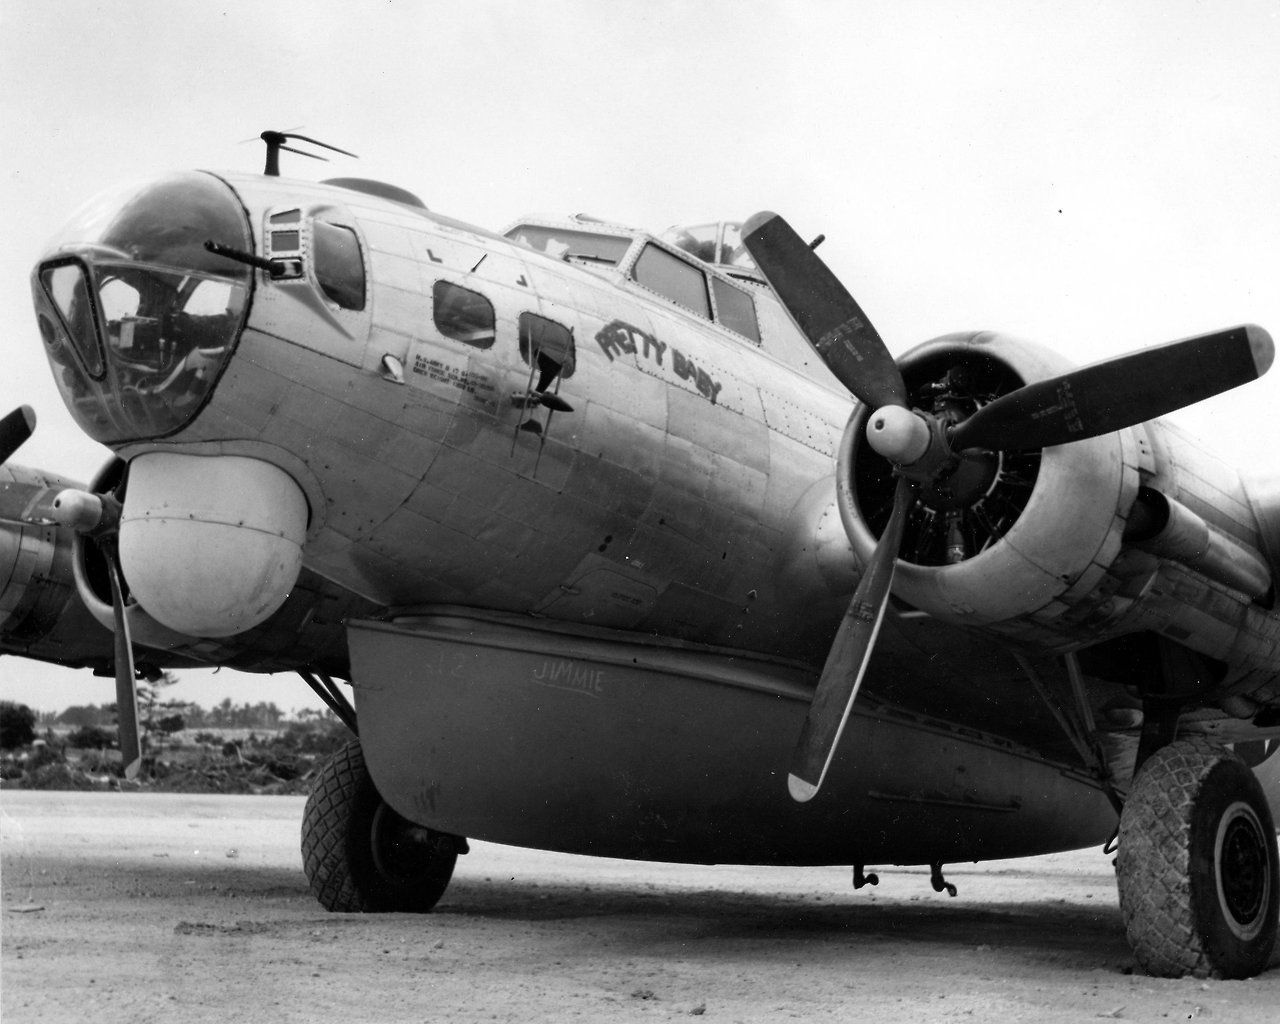 A B17H/SB17G of the 5th Rescue Group, Okinawa, 1945